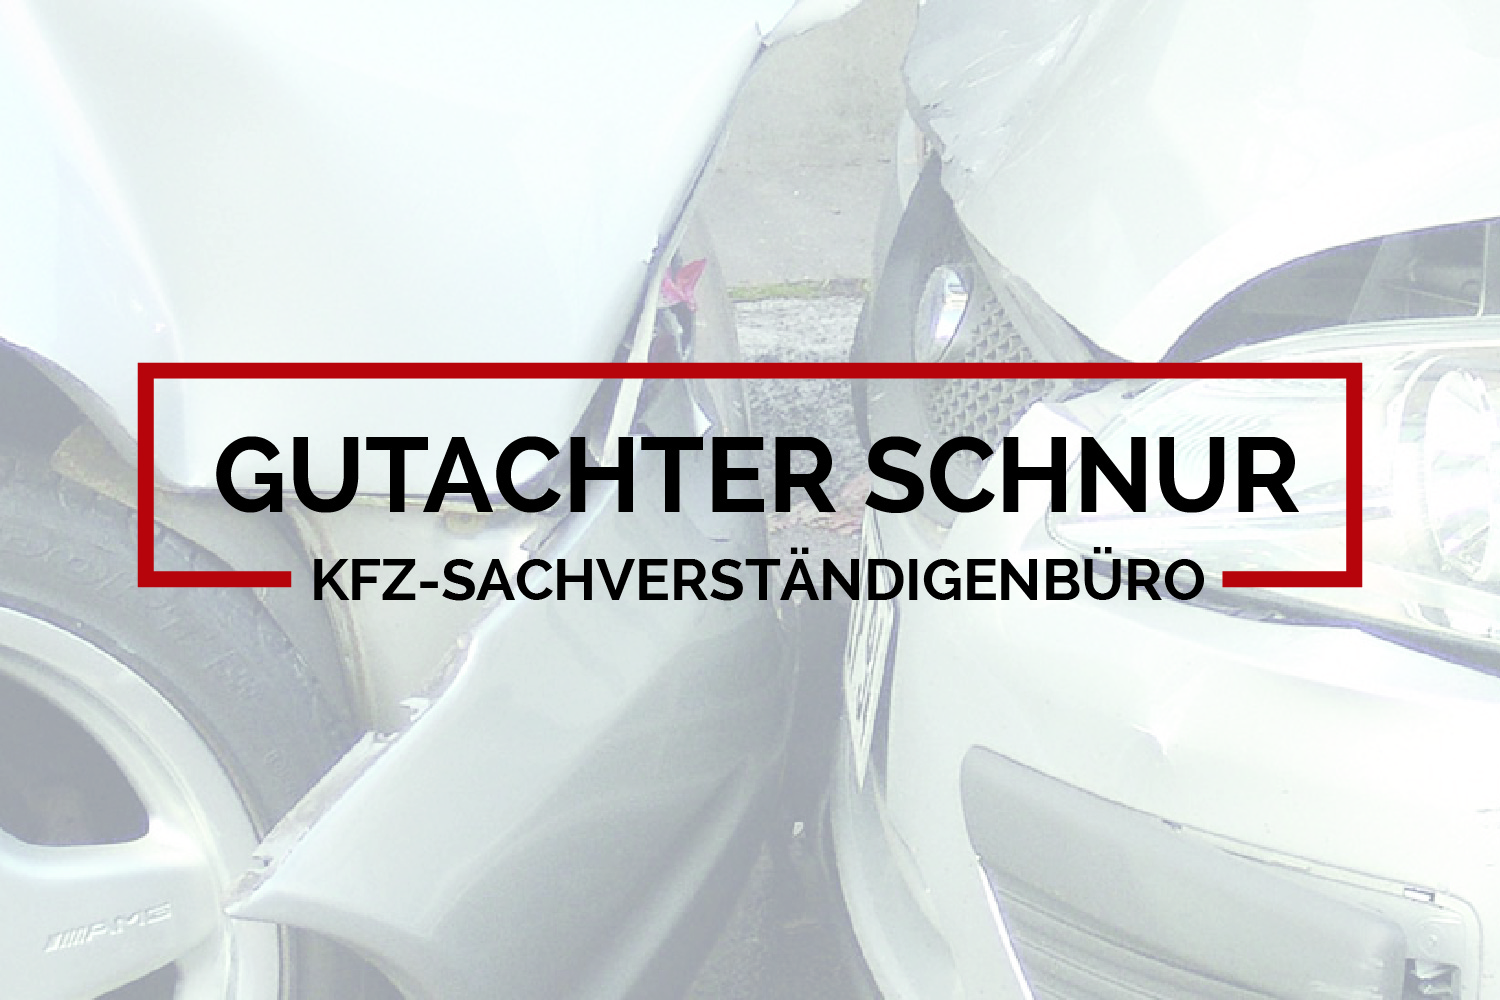 Gutachter Schnur Webdesign Website Cooperate Design Logo Design